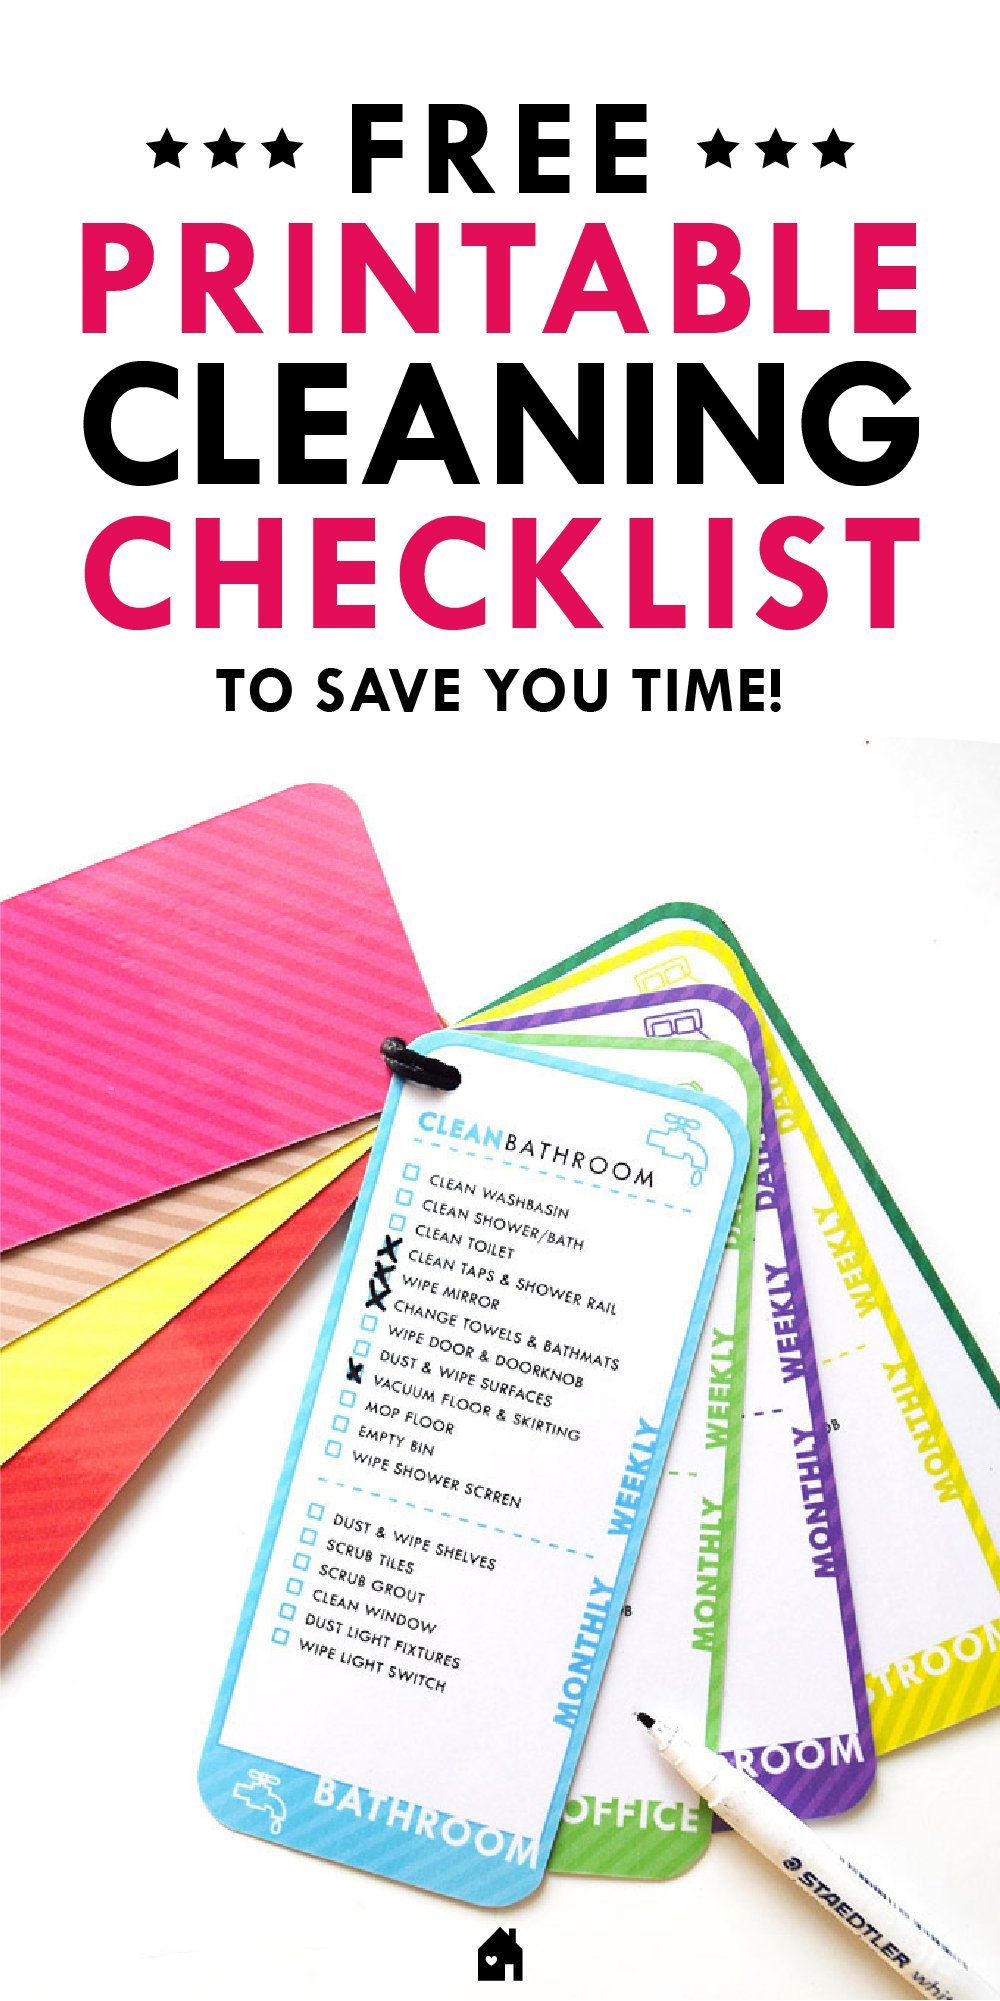 Cleaning Checklist - Free Printable!